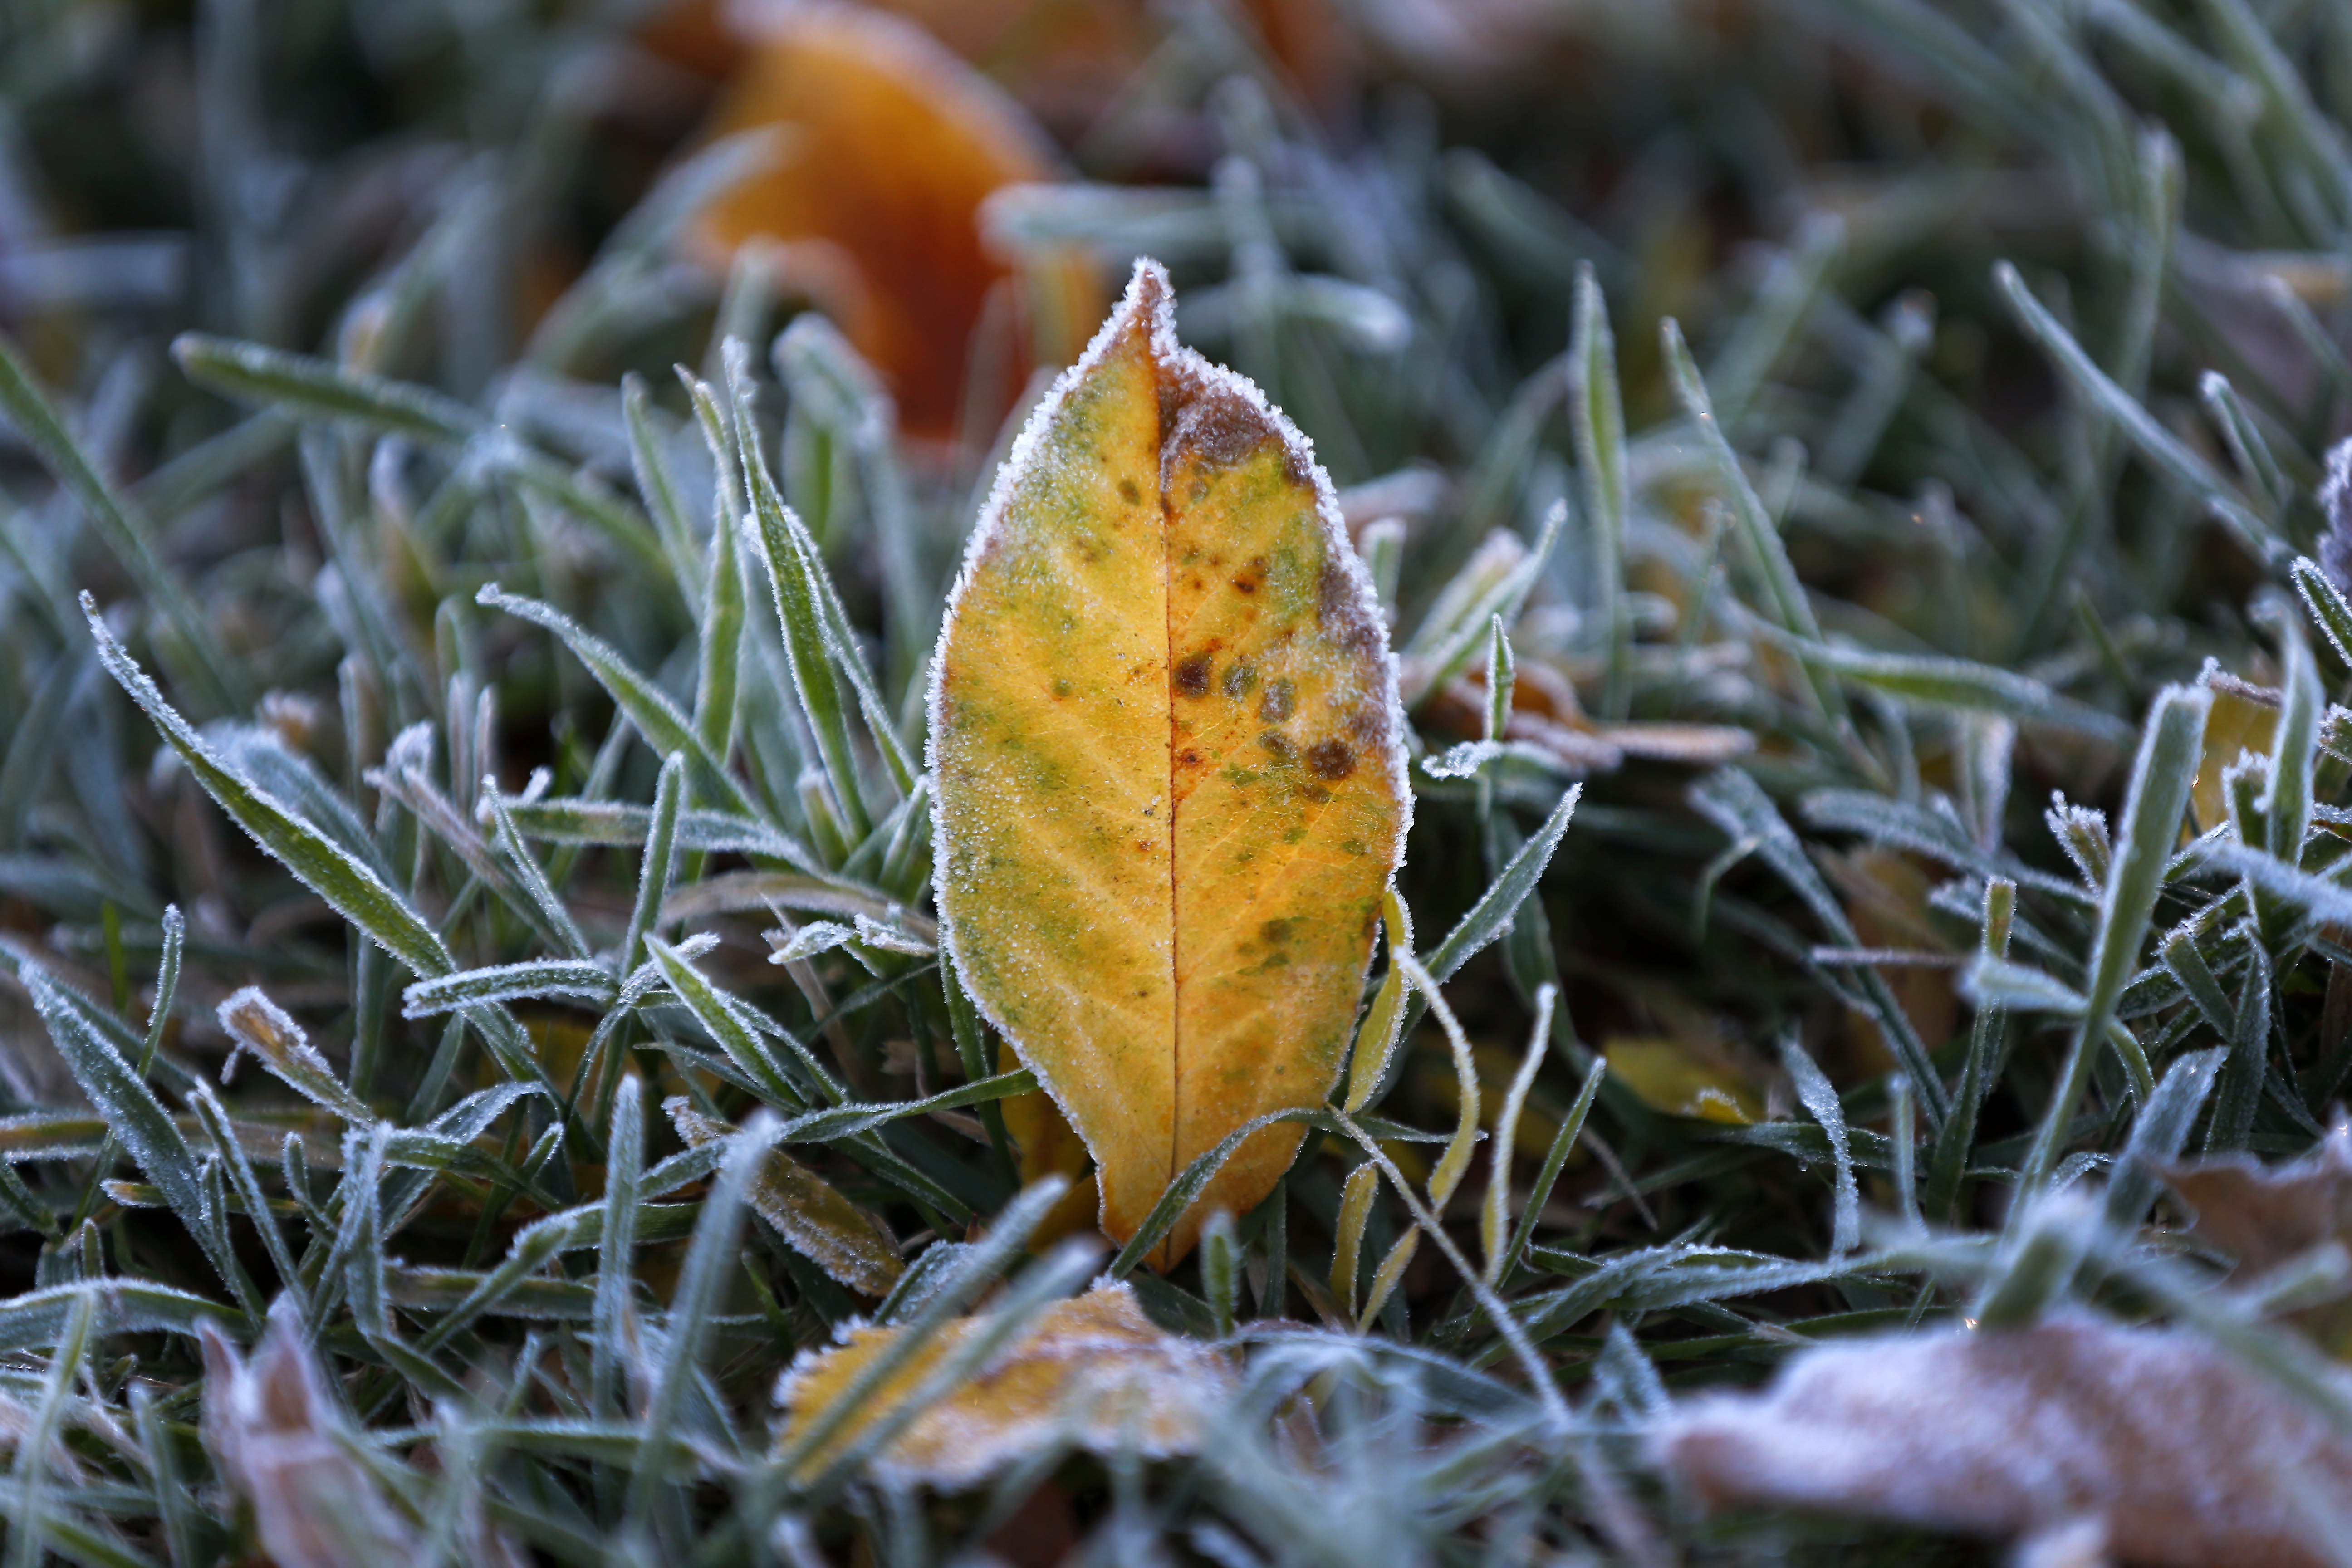 Frost covers the leaves and grass in a yard in Orchard Park. (Mark Mulville/Buffalo News)